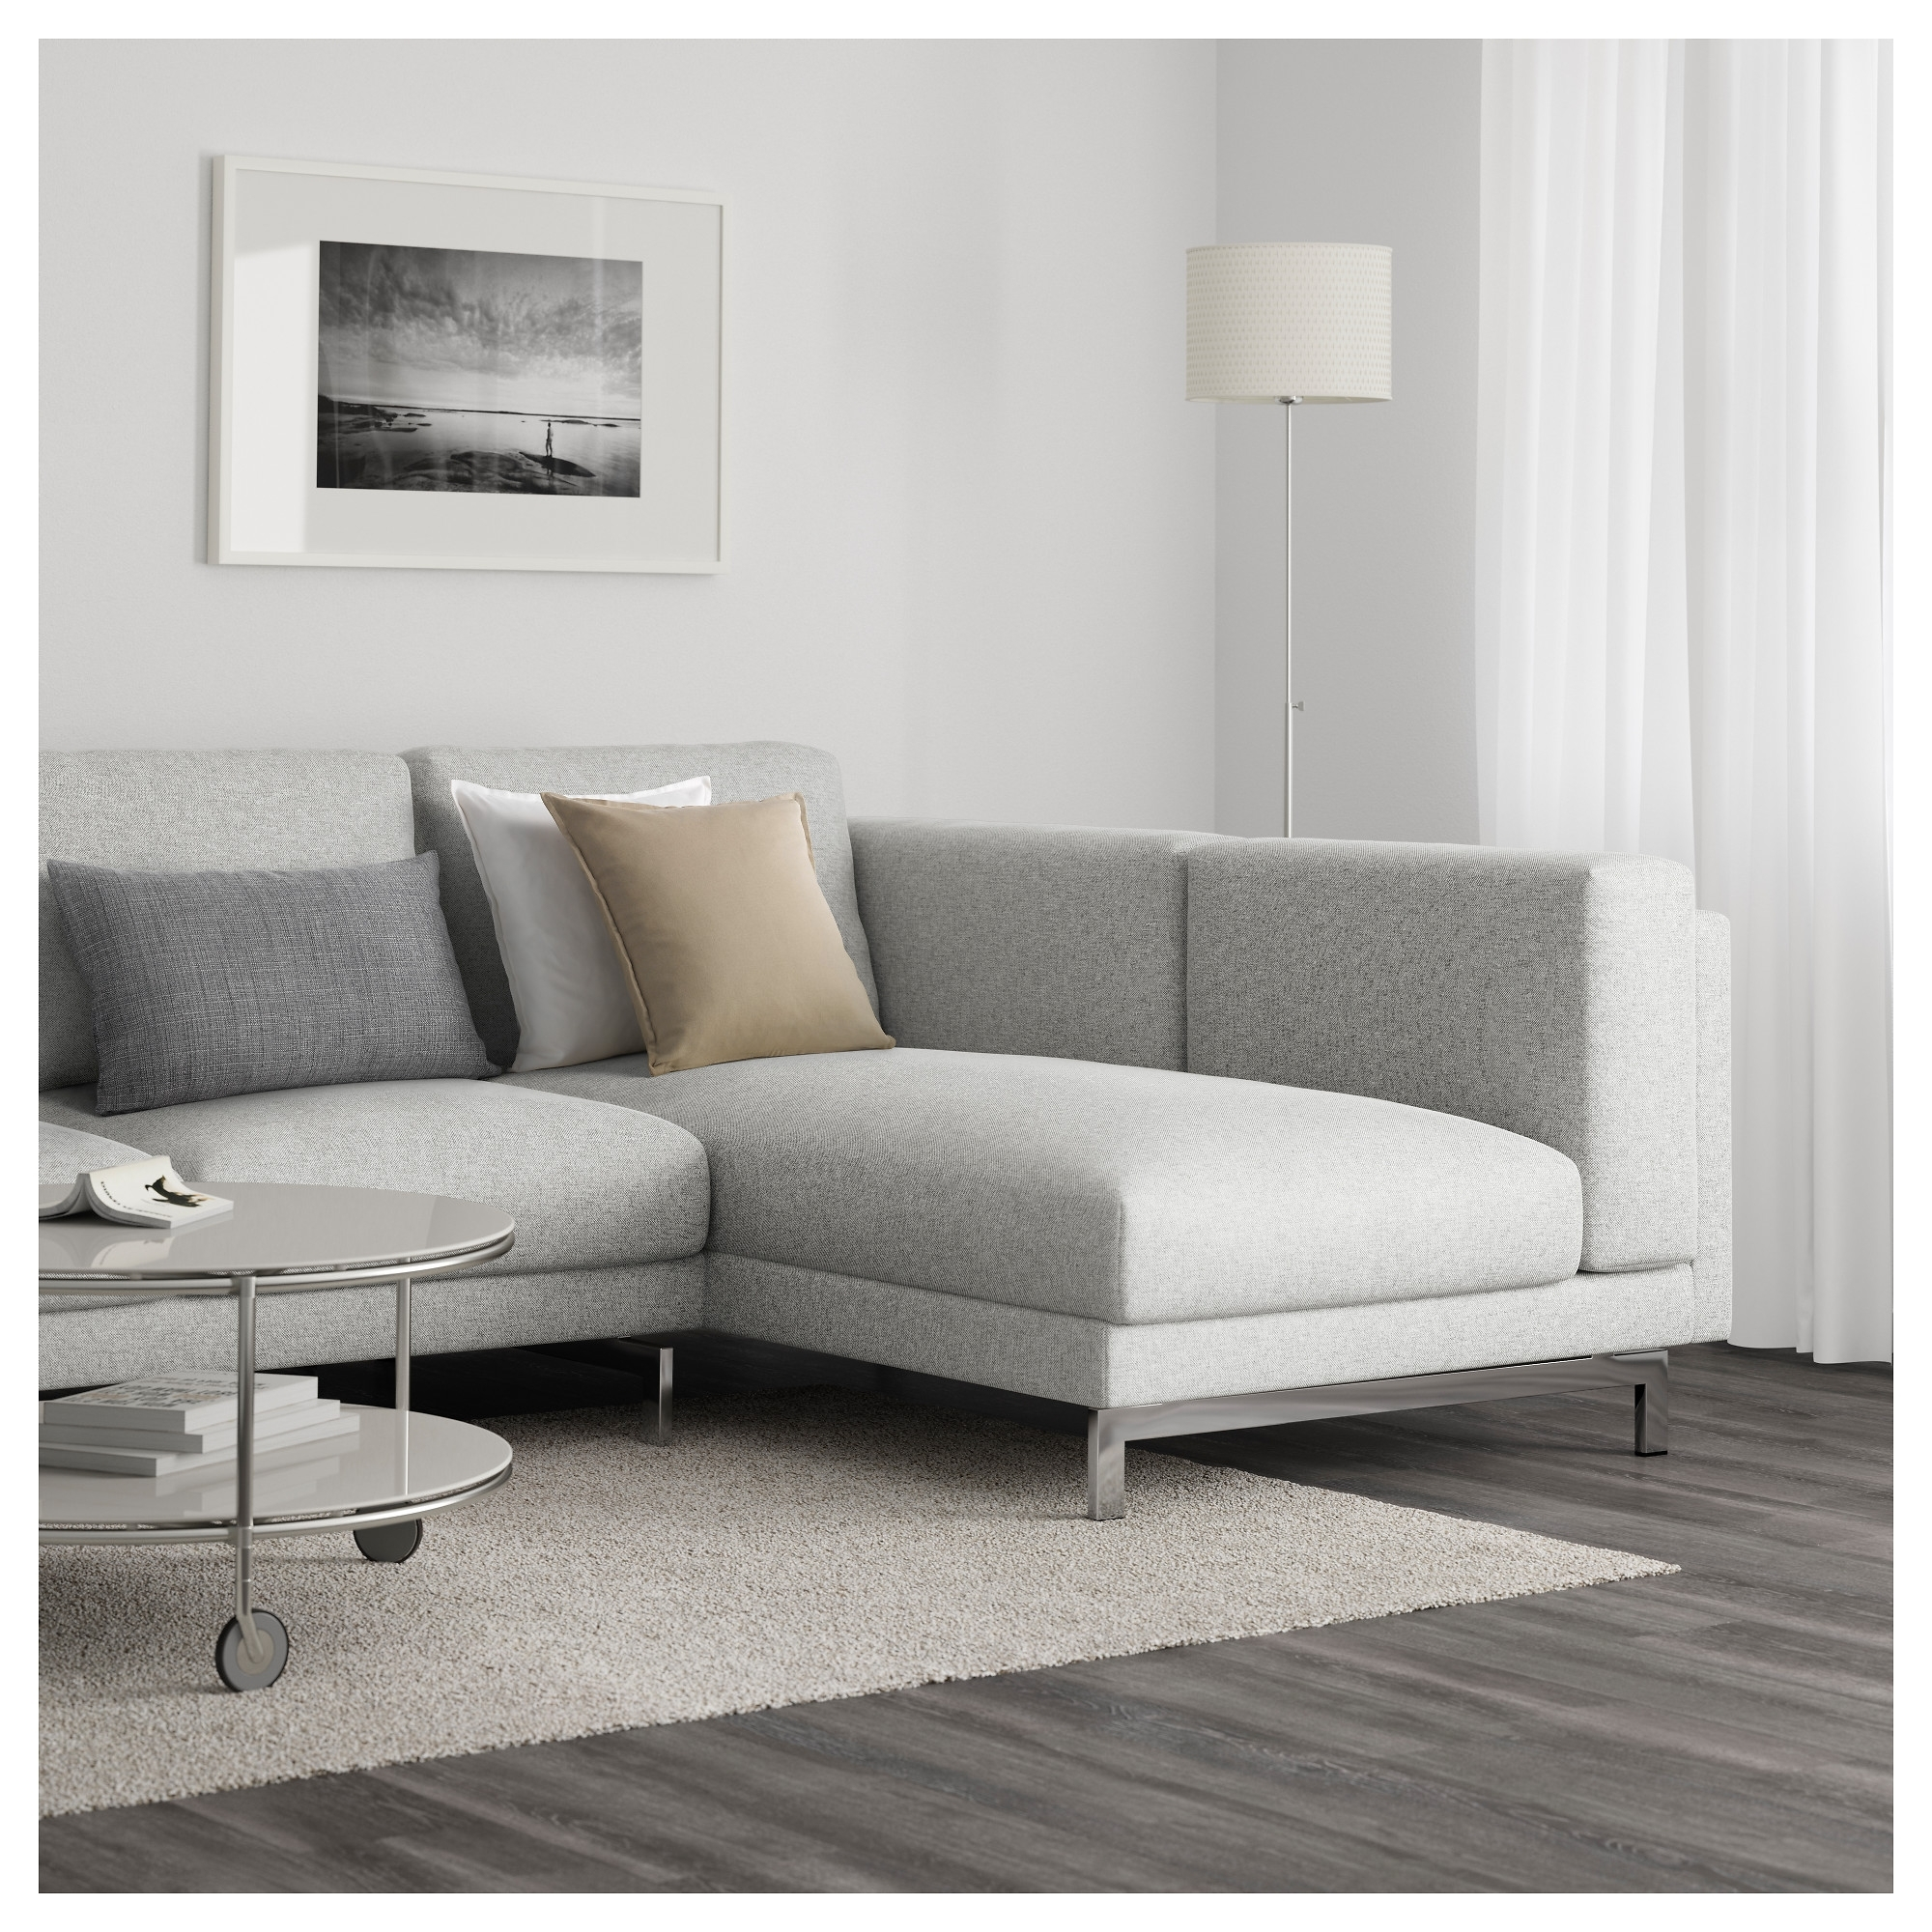 Black And White Sofas Pertaining To Newest Nockeby Sofa – With Chaise, Left/tallmyra White/black, Chrome (View 15 of 20)